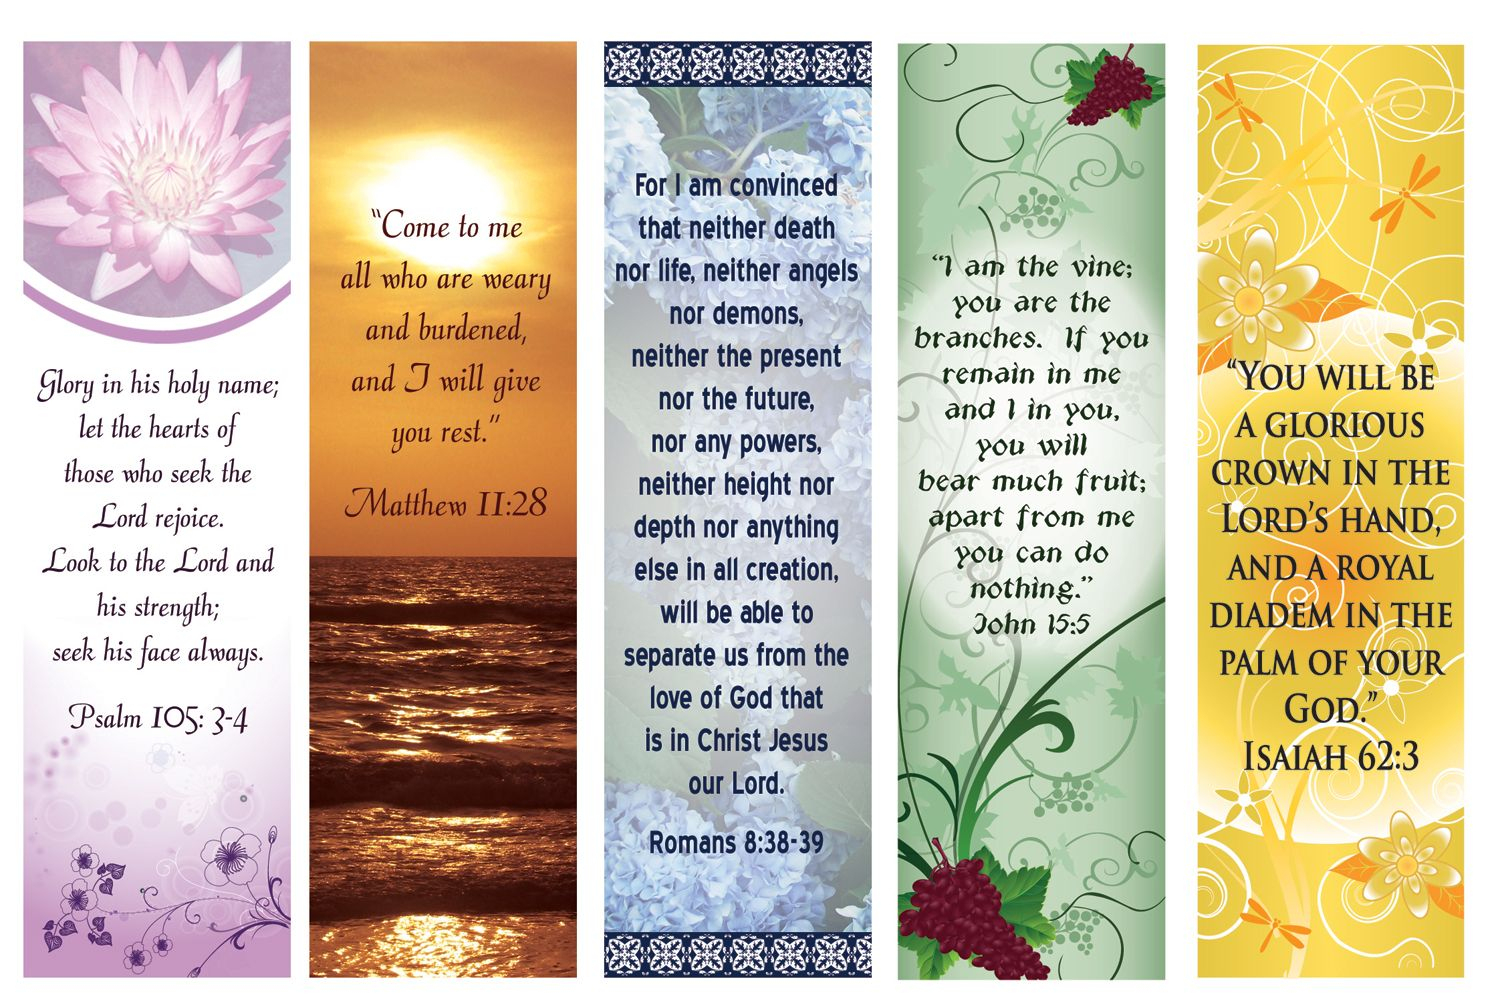 Free Printable Bookmarks With Bible Verses | Bookmarks | Pinterest - Free Printable Bible Bookmarks Templates